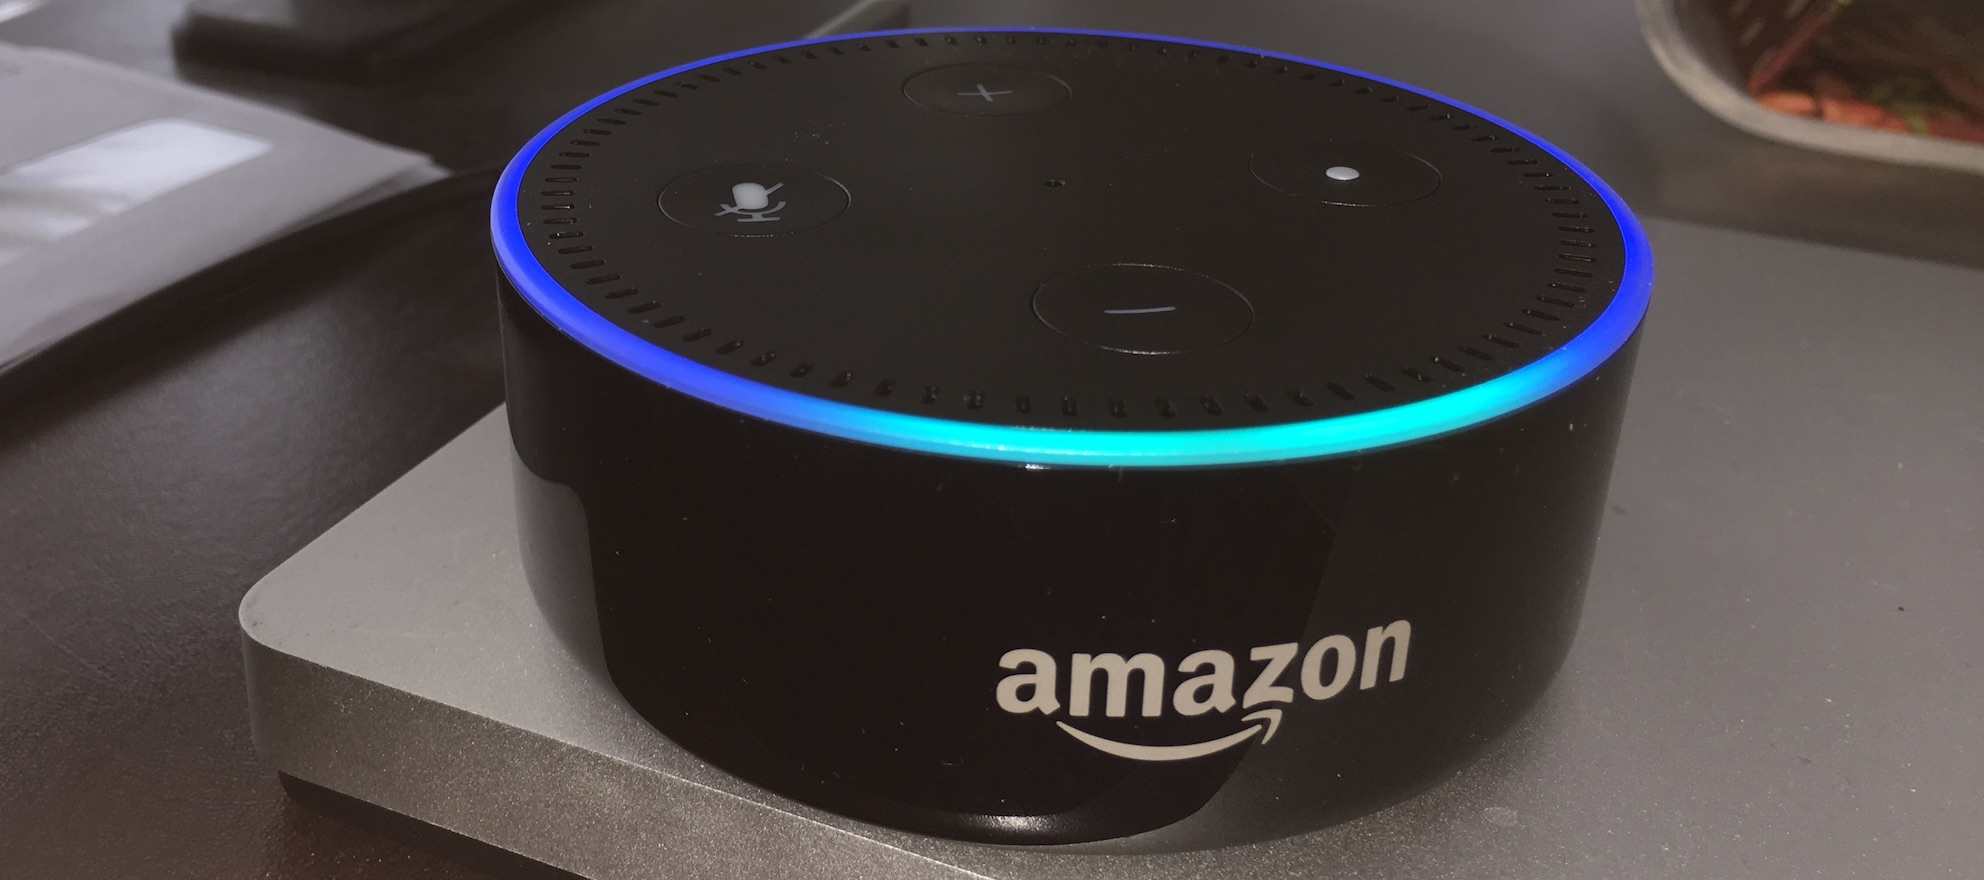 CRM LionDesk roars into voice-activated internet with skills for Amazon Echo